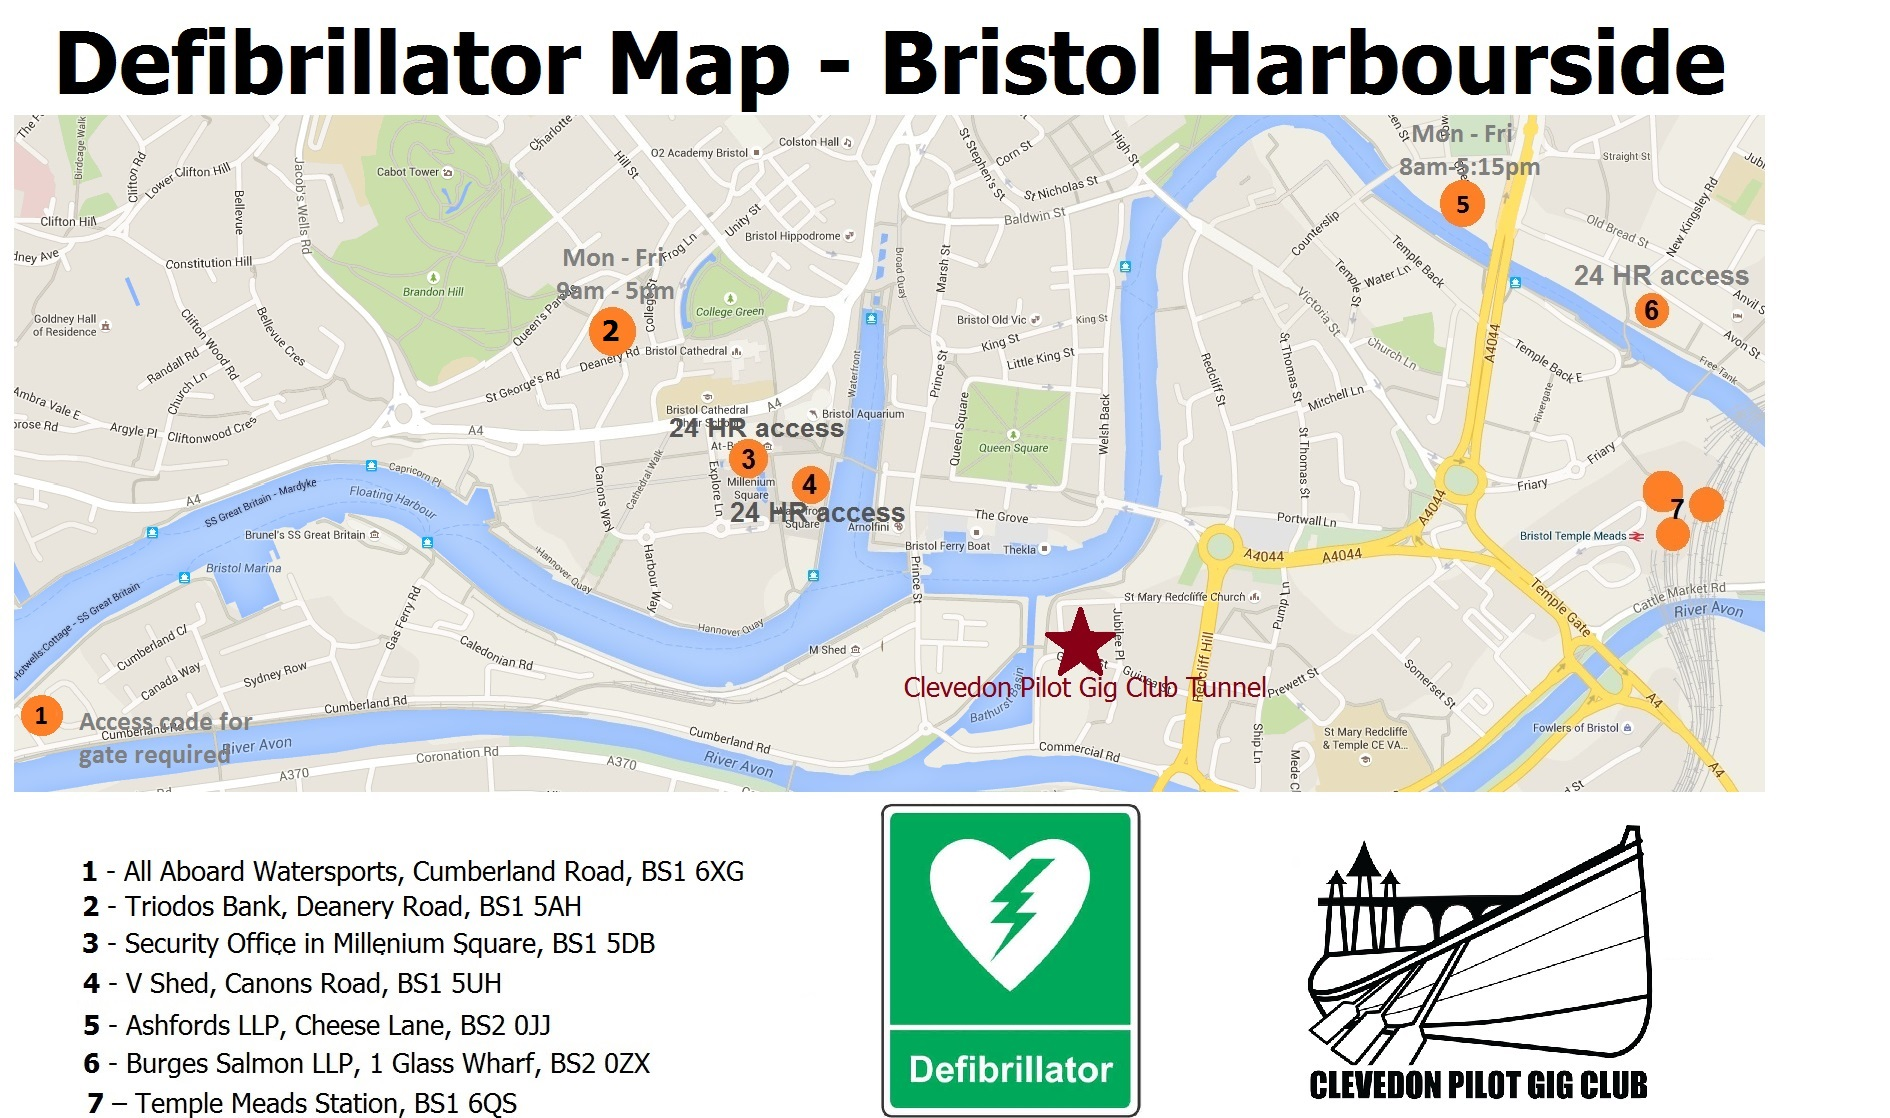 Defibrillators Around Bristol Harbour Clevedon Pilot Gig Club